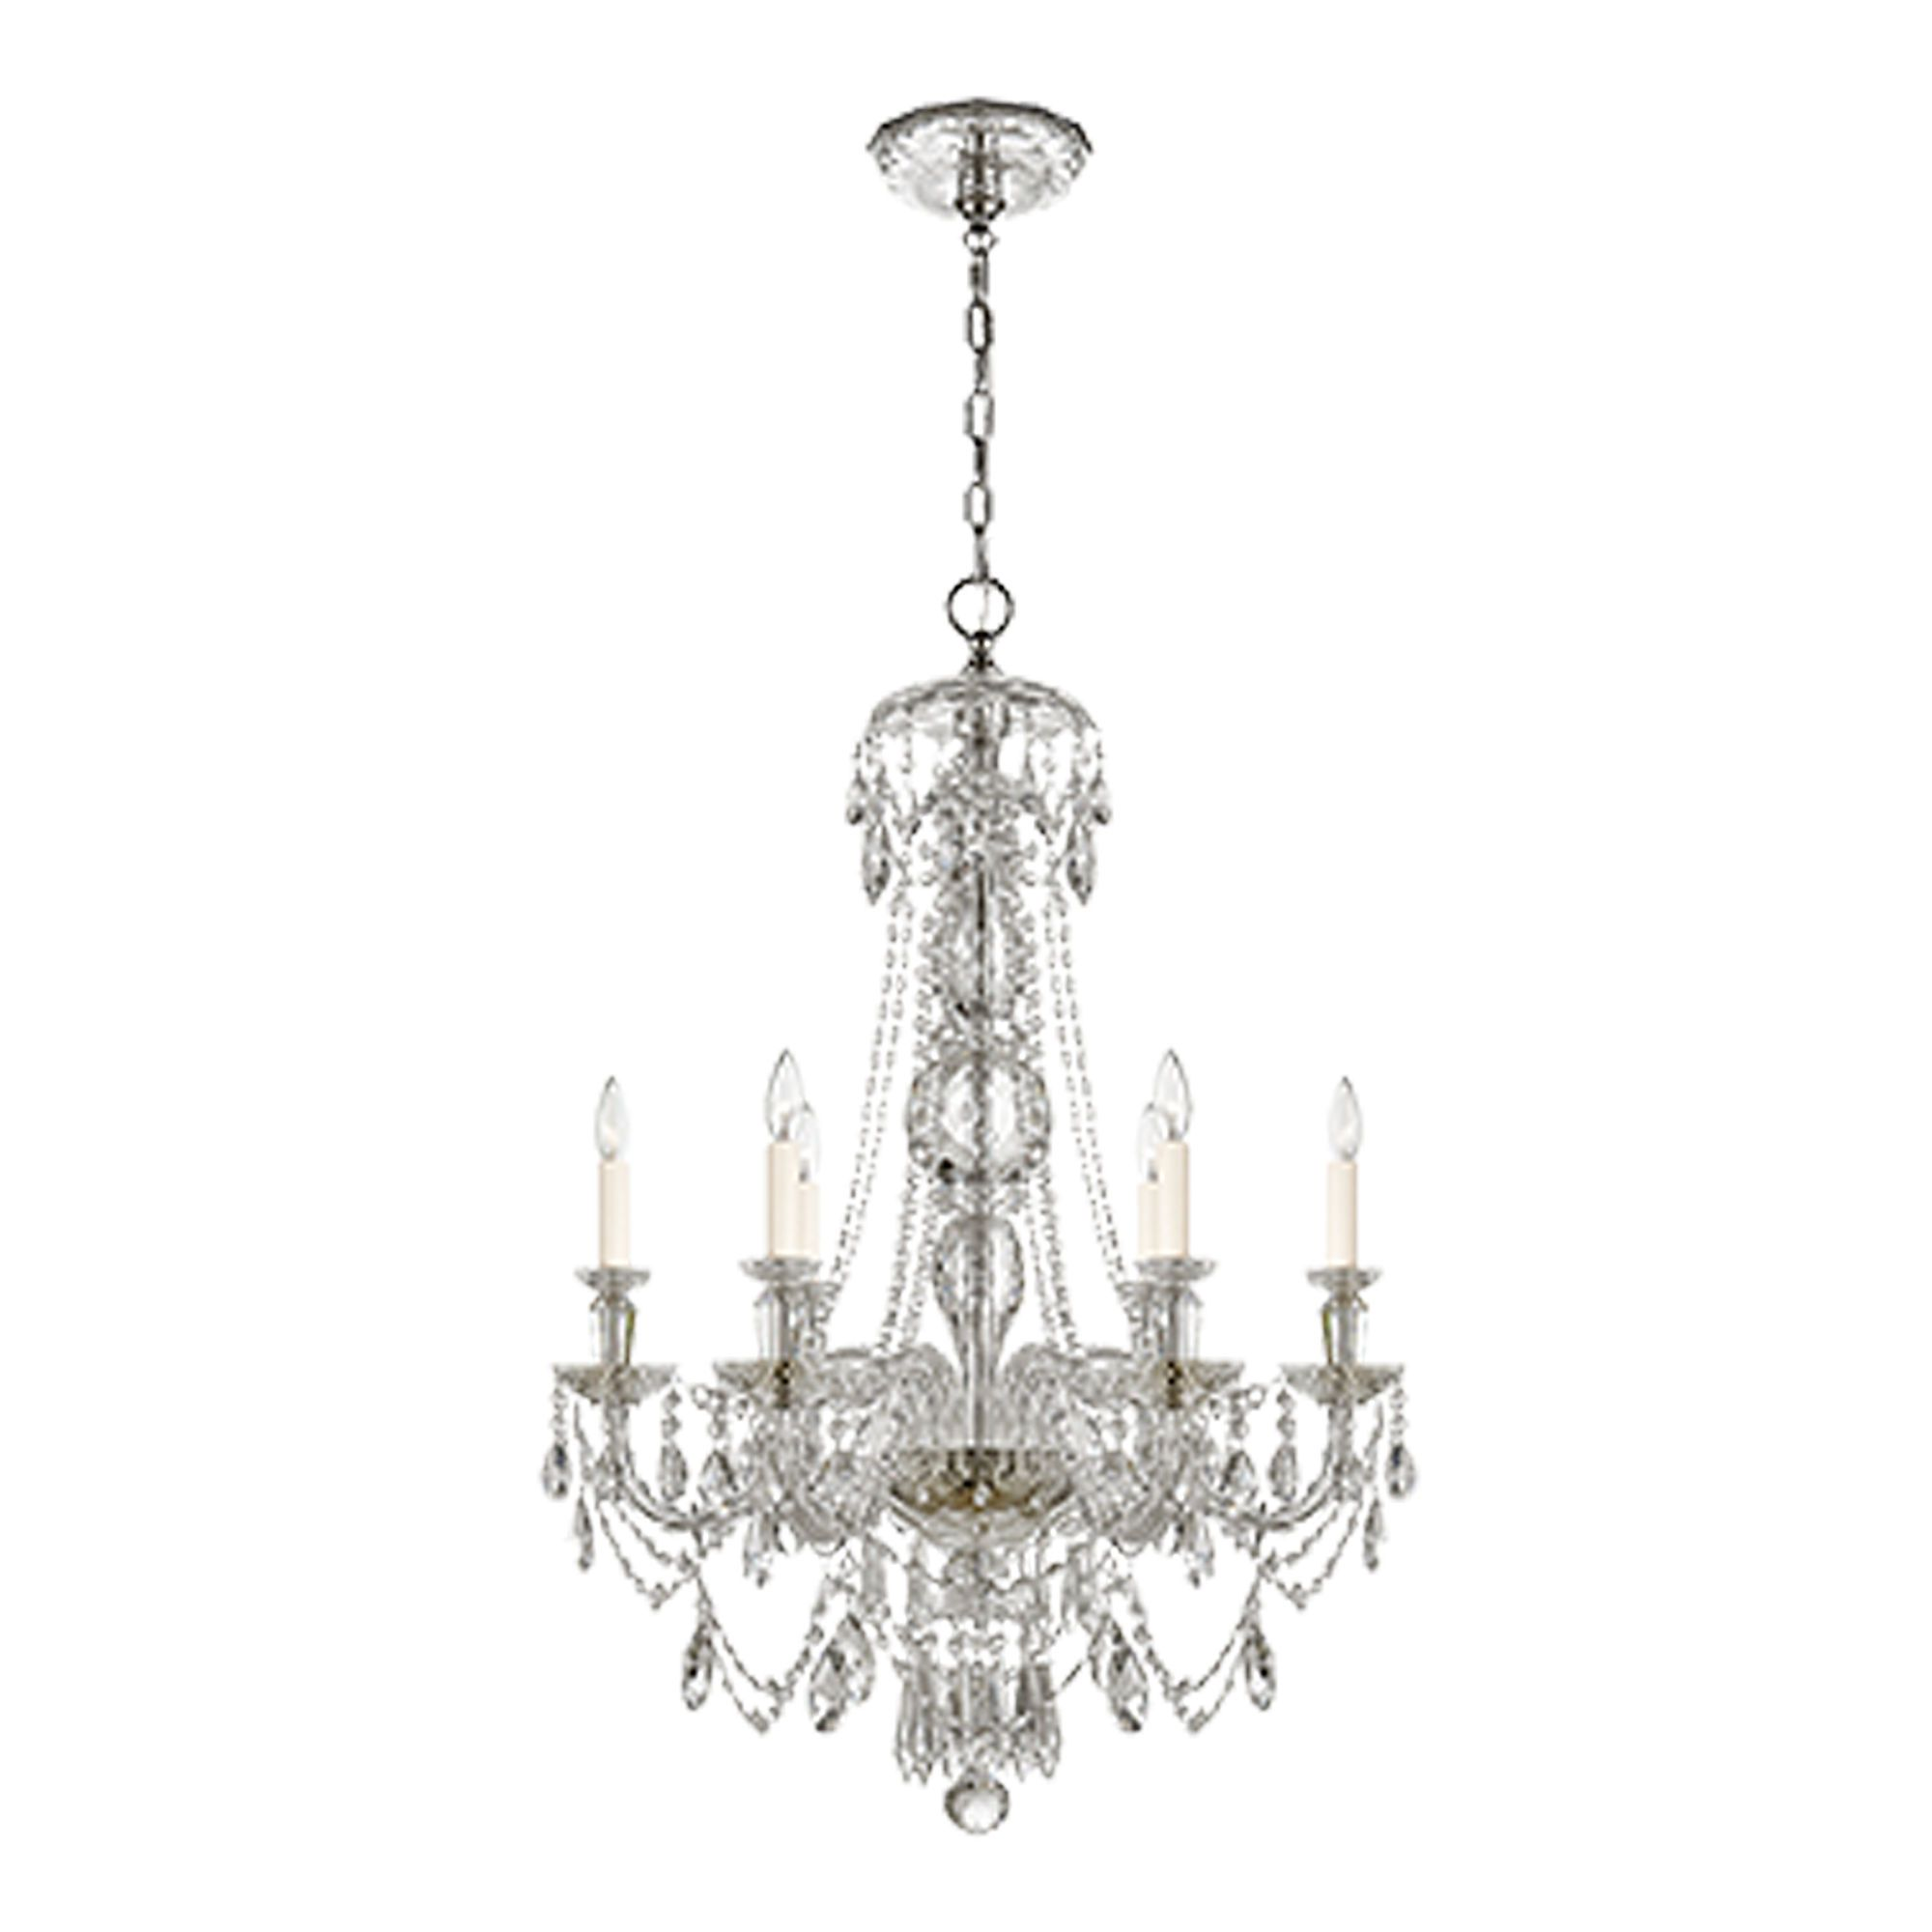 Daniela Crystal Chandelier Lighting Fixtures Lighting